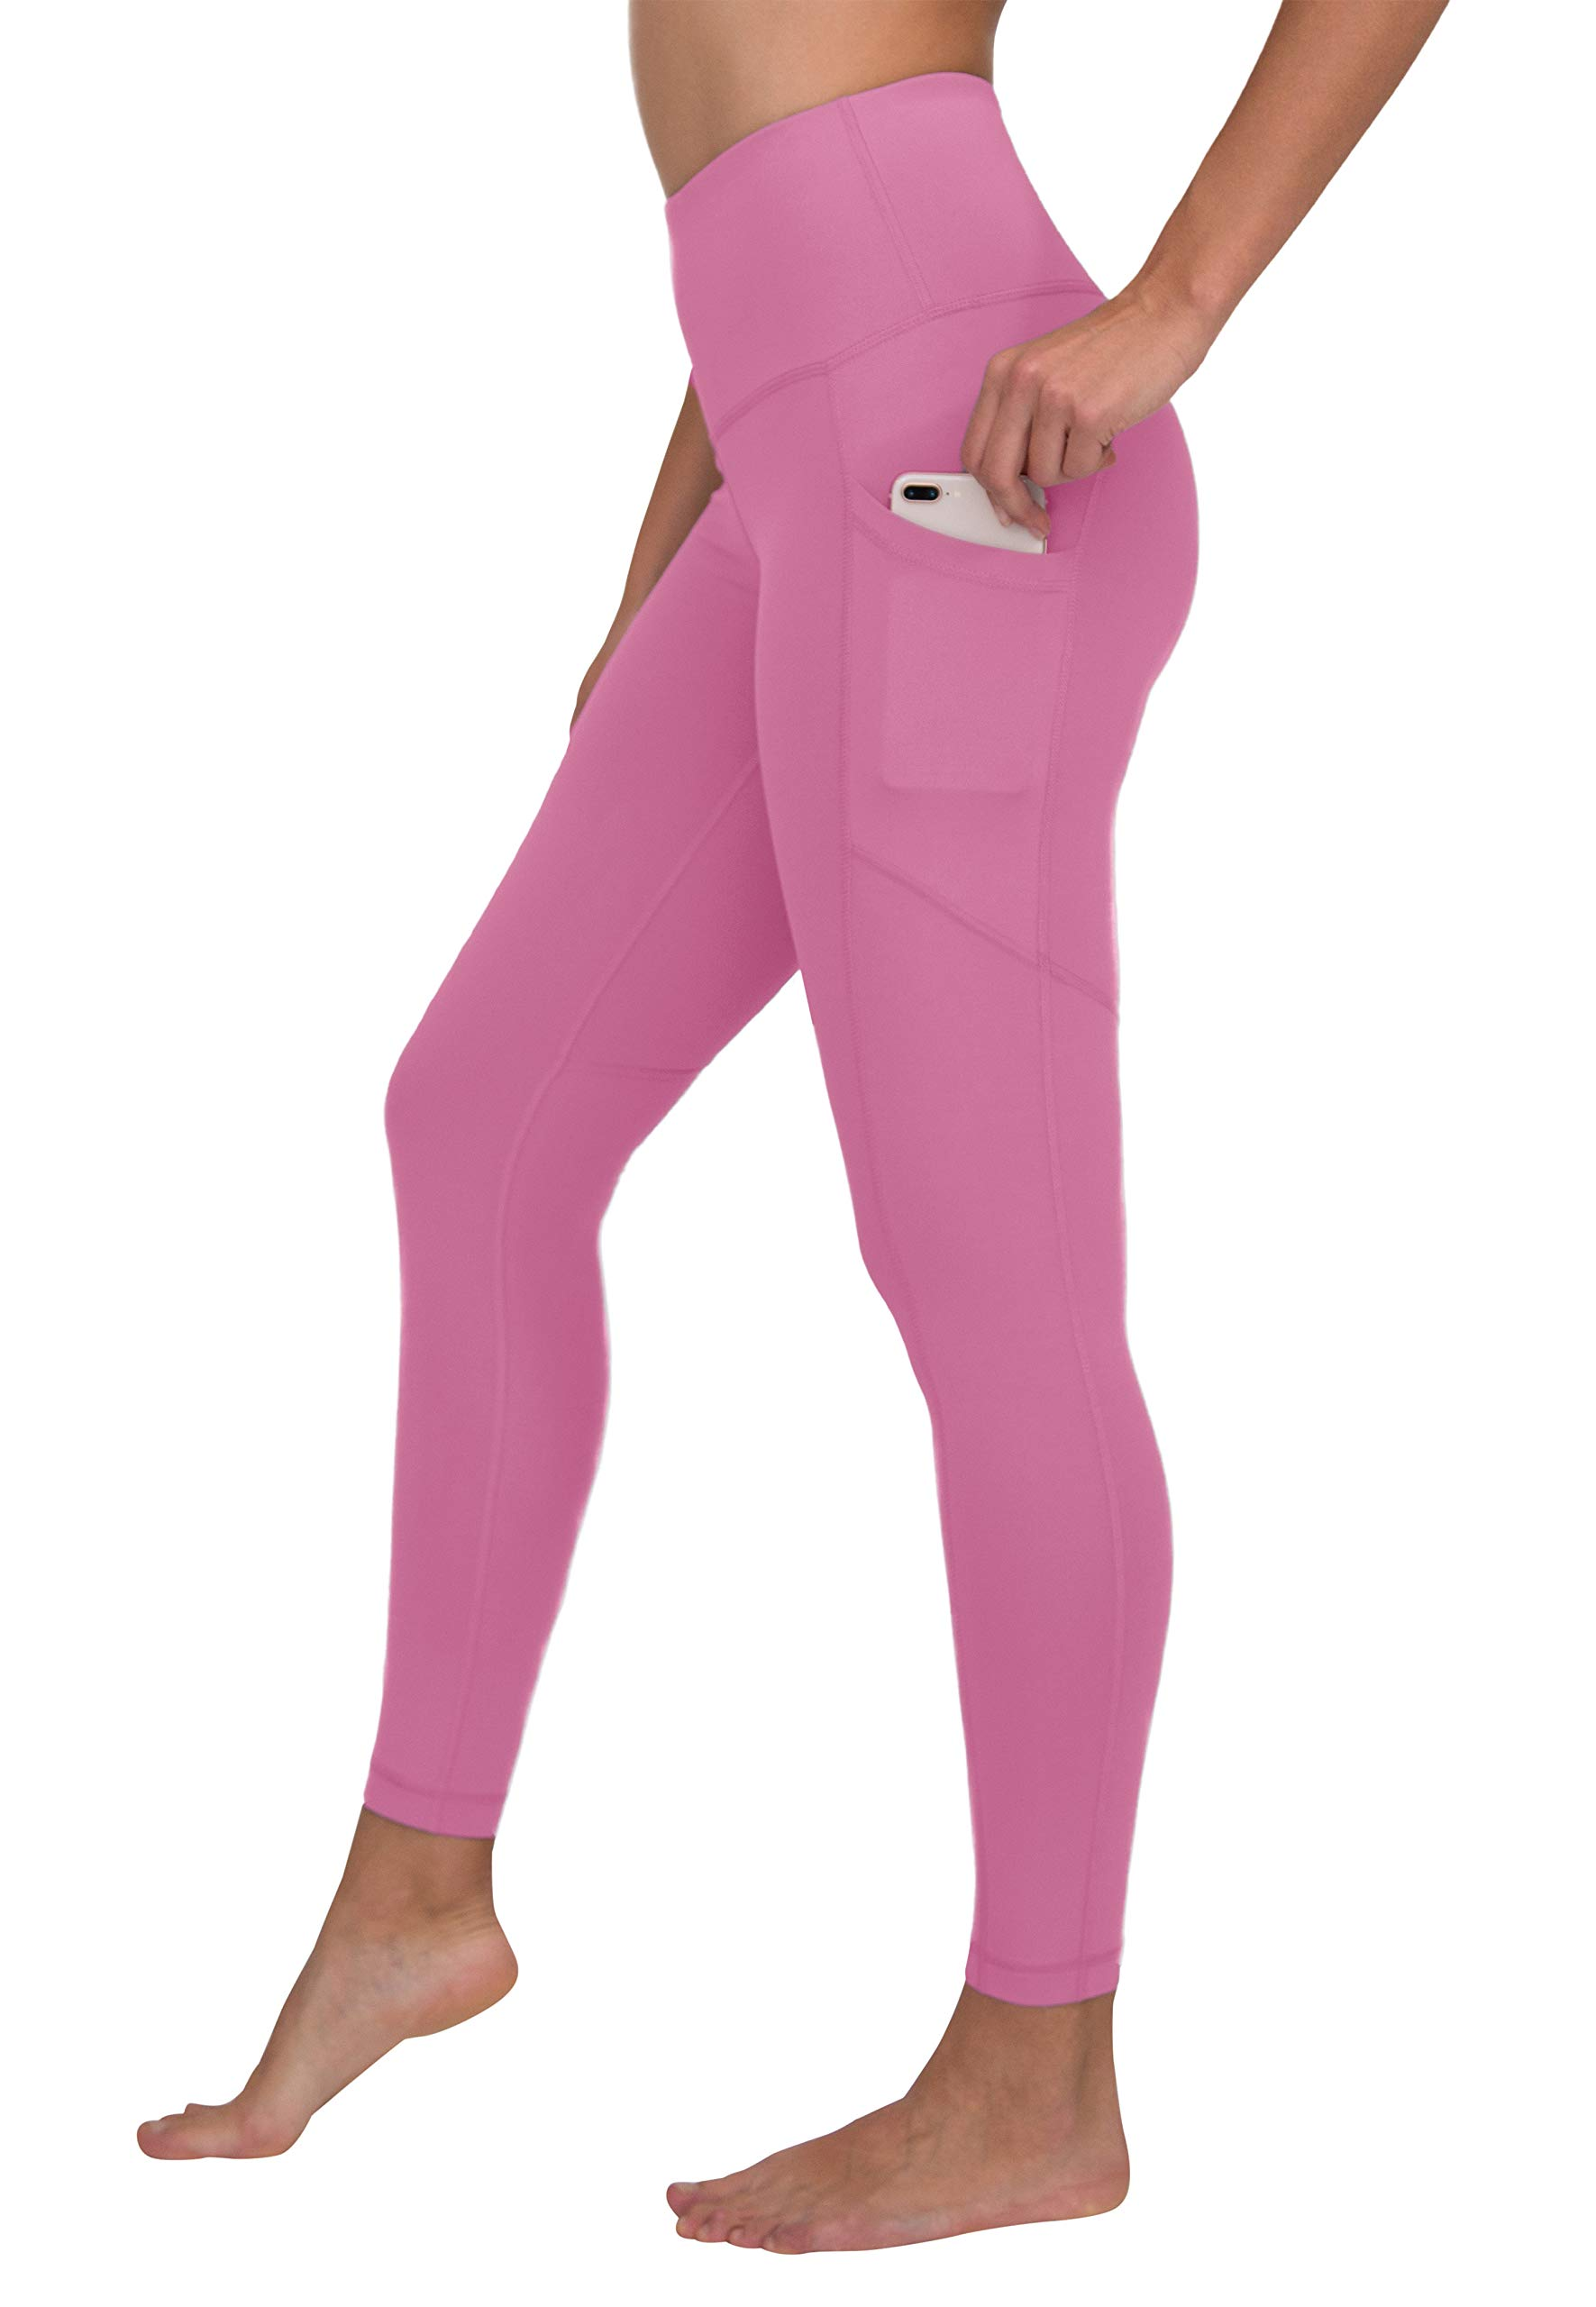 90 Degree By Reflex Women's Power Flex Yoga Pants - Cuban Orchid - Medium by 90 Degree By Reflex